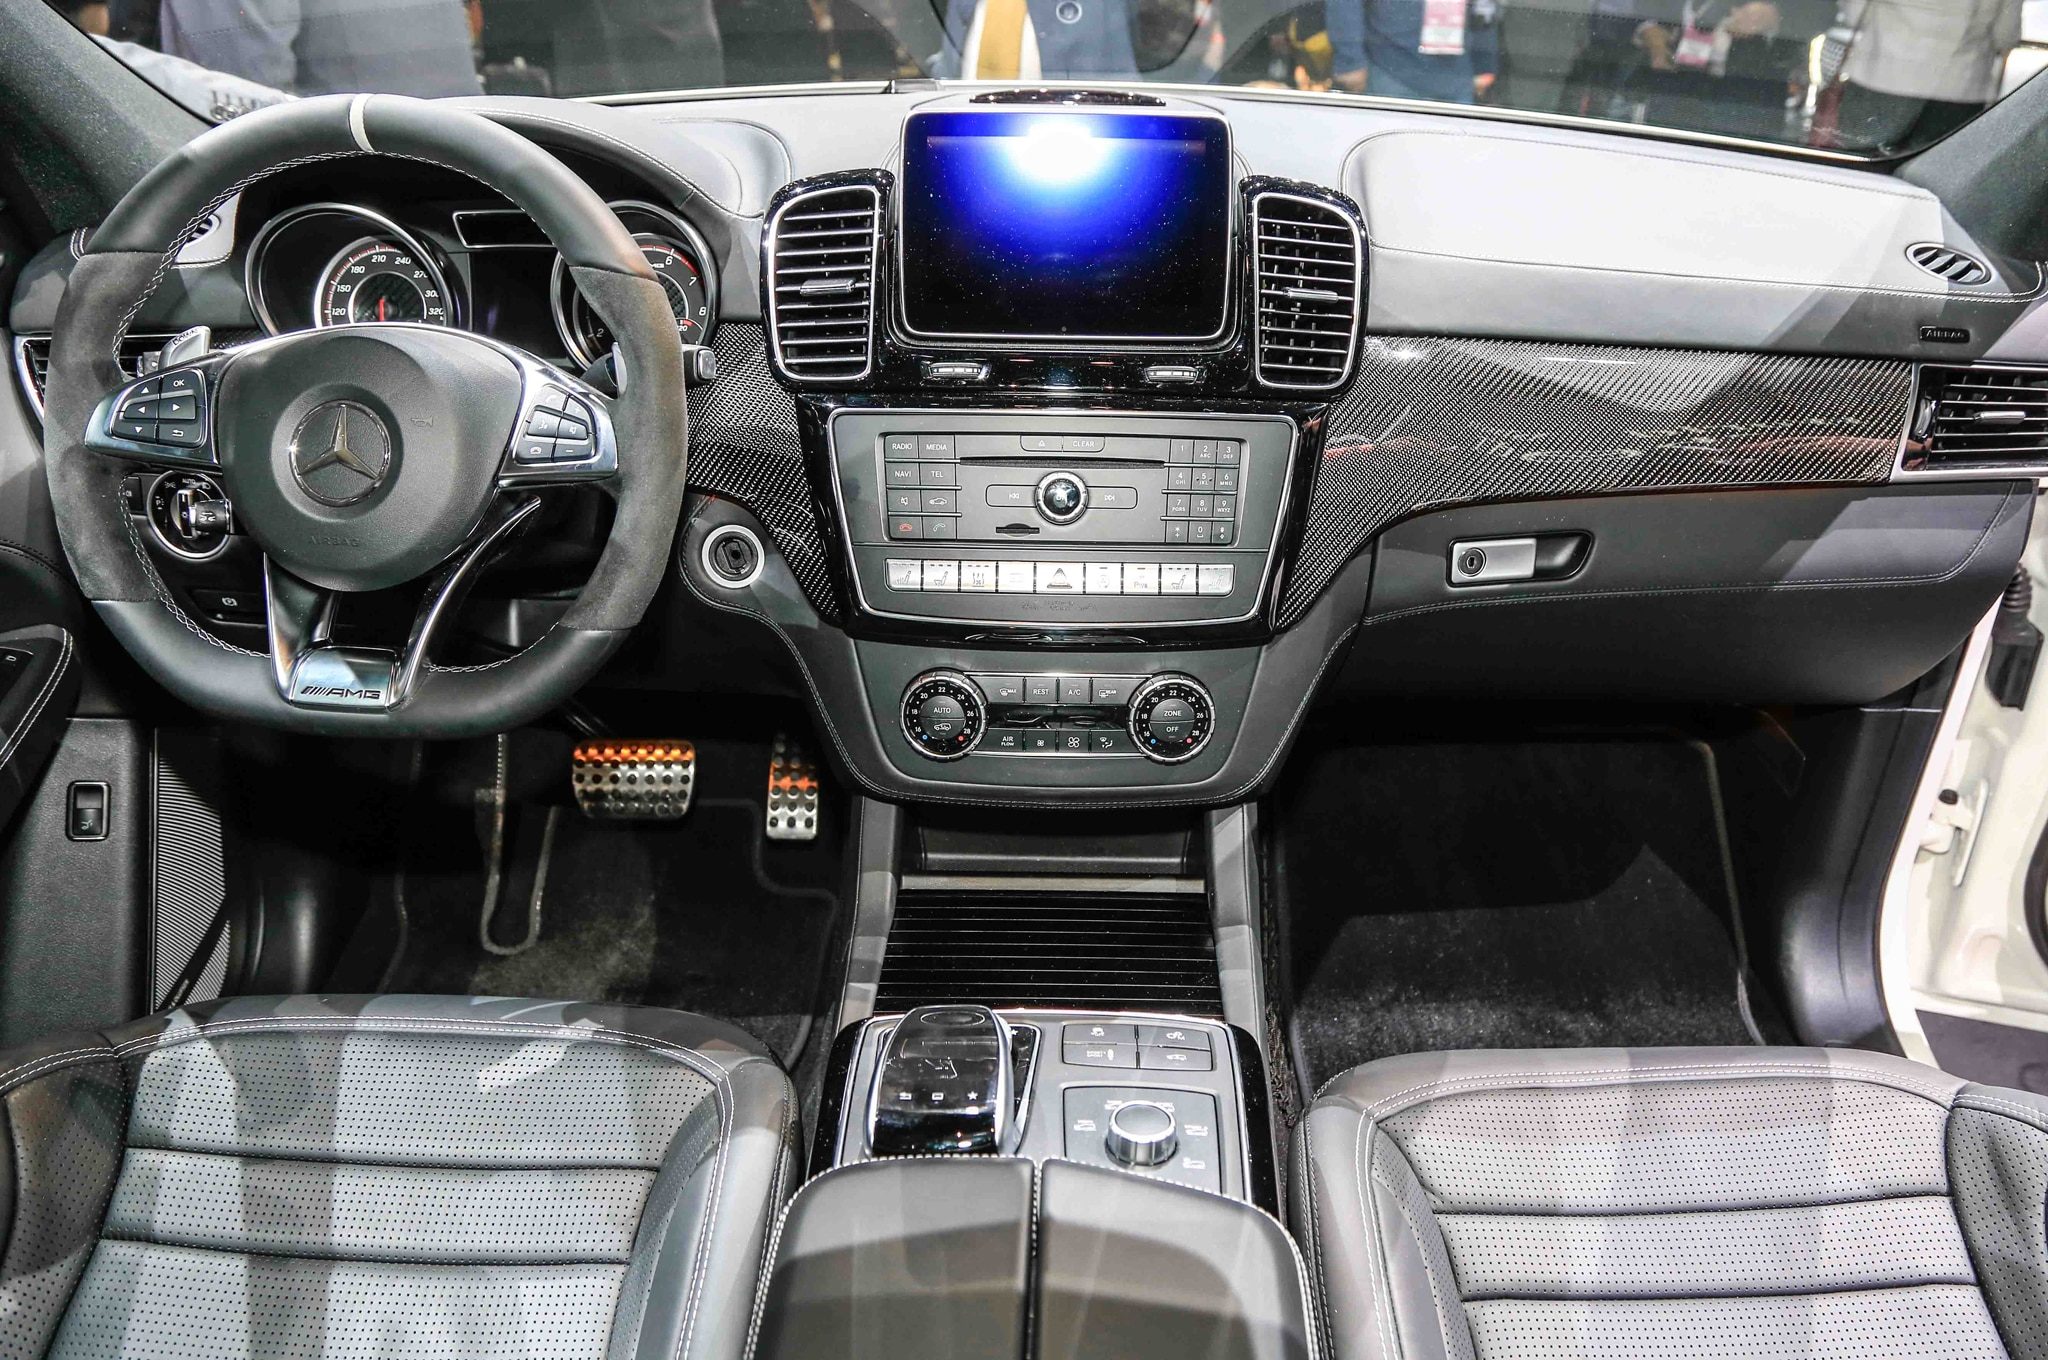 https://st.automobilemag.com/uploads/sites/11/2015/01/2016-Mercedes-Benz-GLE63-S-AMG-4Matic-interior-view.jpg